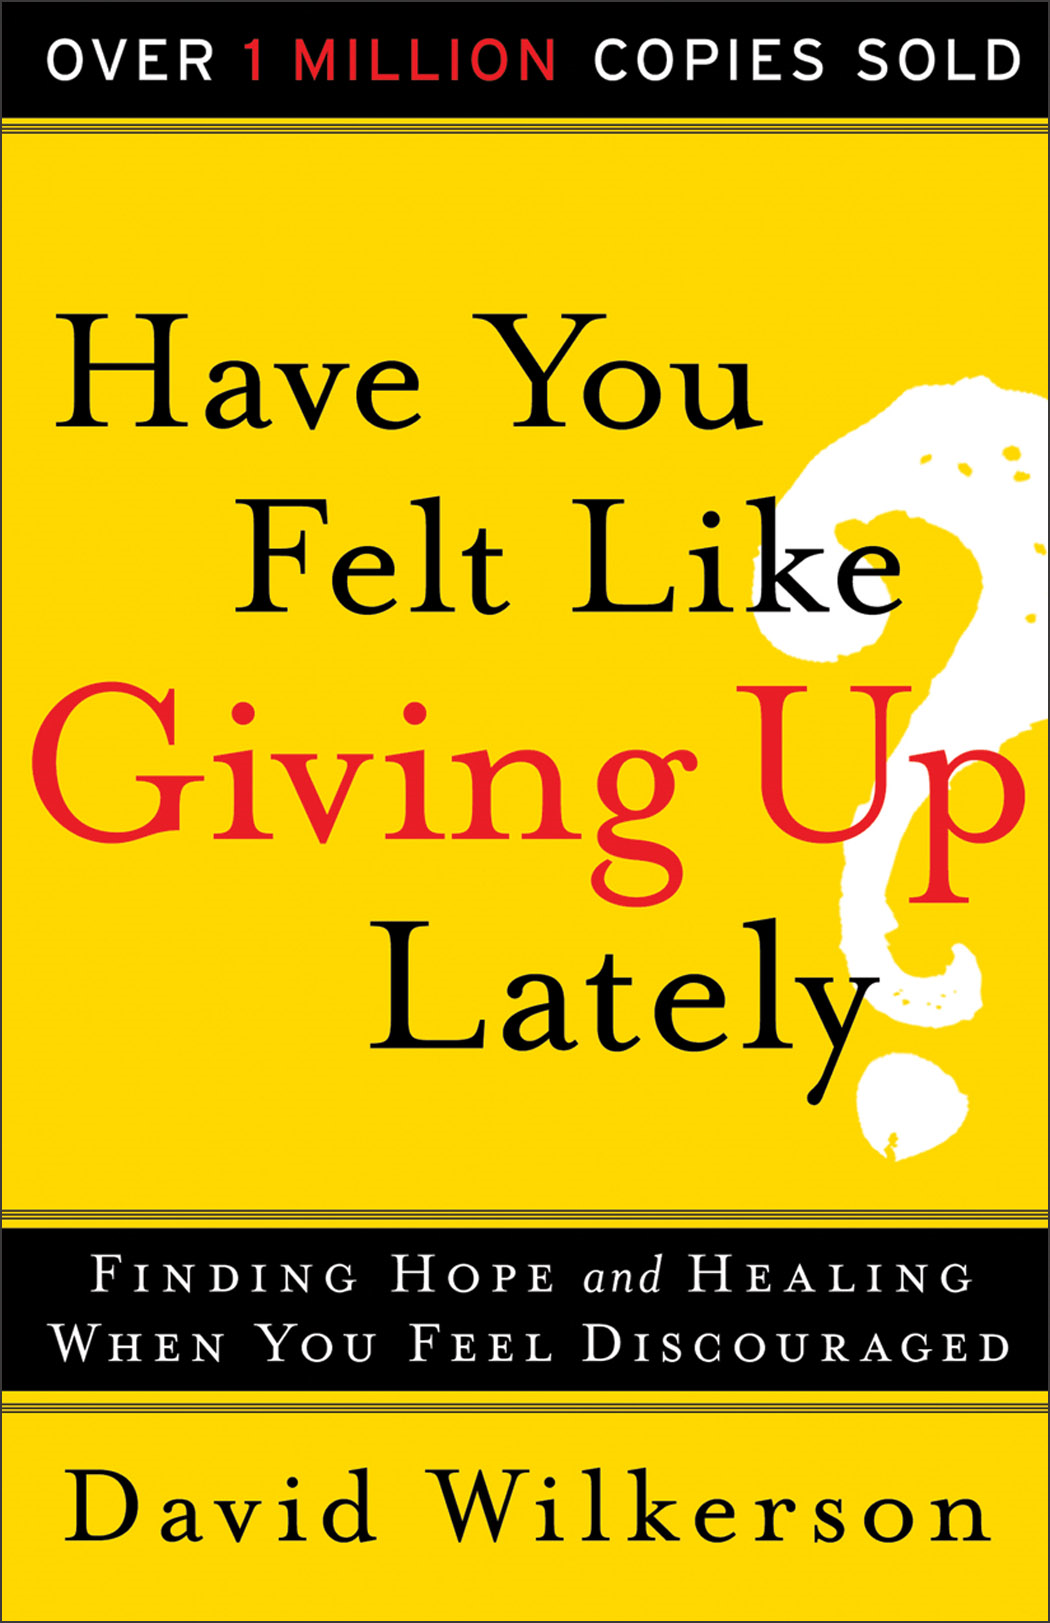 Have You Felt Like Giving Up Lately? By: David Wilkerson